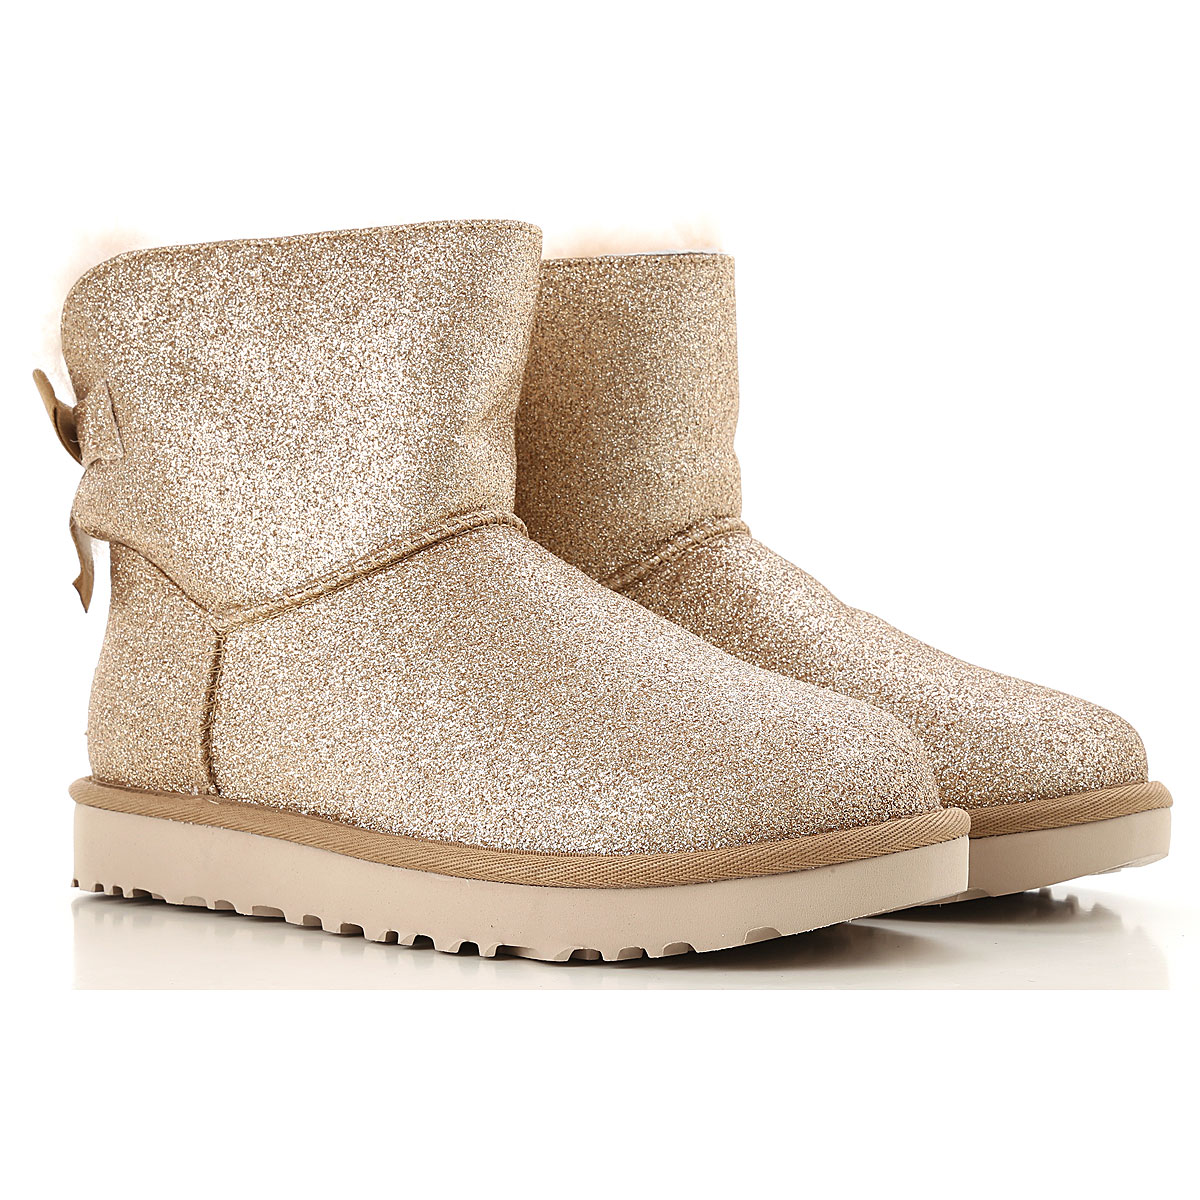 UGG Boots for Women, Booties On Sale in Outlet, Gold, Sparkle, 2019, USA 5 UK 3 5 EU 36 JAPAN 220 USA 6 UK 4 5 EU 37 JAPAN 230 USA 10 UK 8 5 E